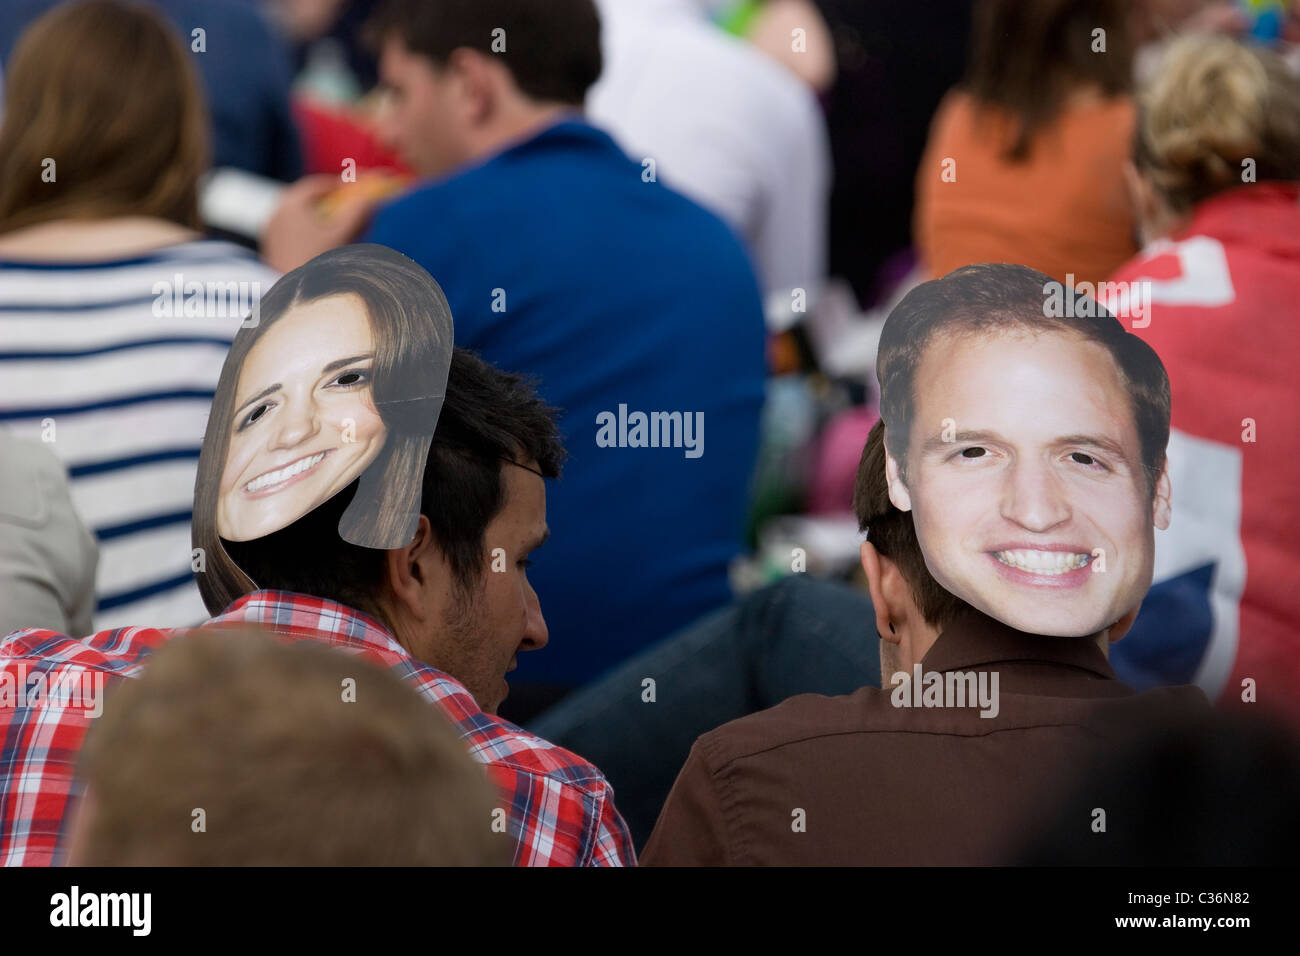 royal wedding, revellers wearing katie middleton and Prince william masks hyde park - Stock Image